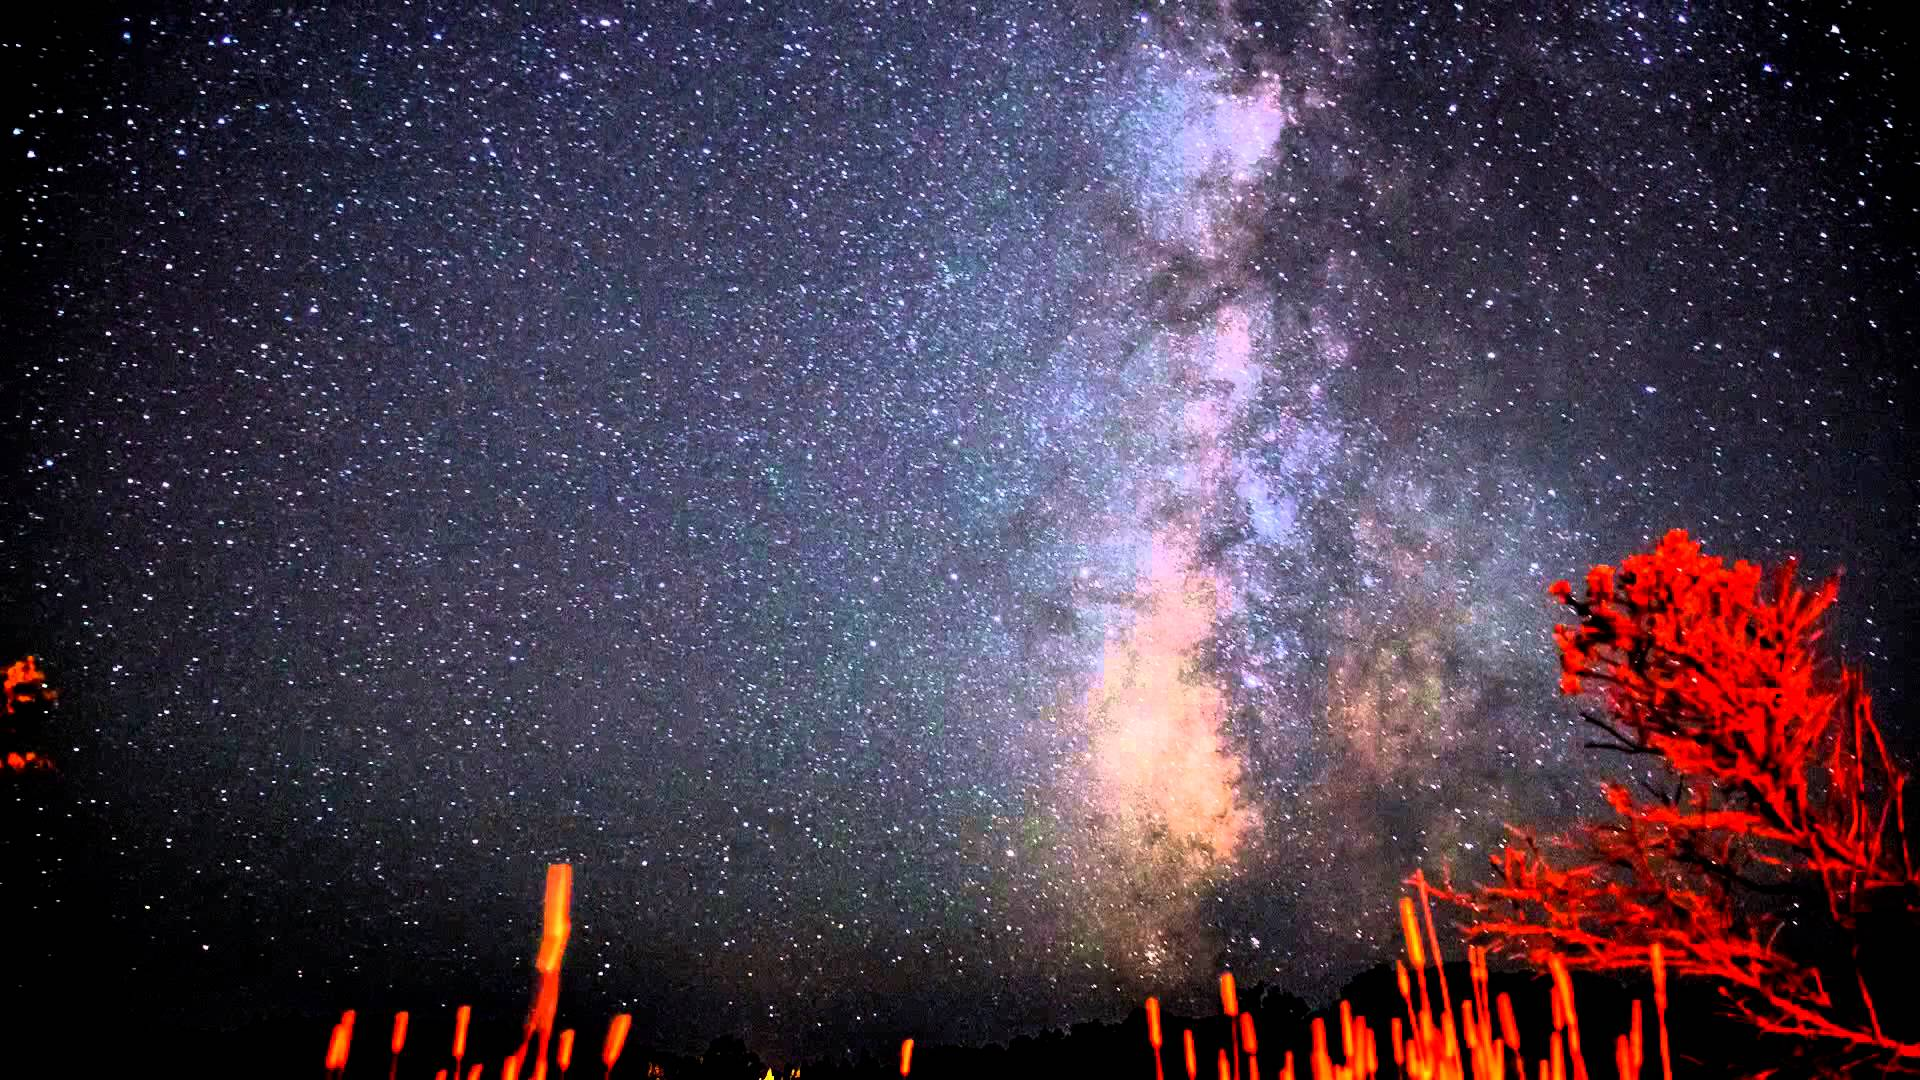 Perseid Meteor Shower Hd